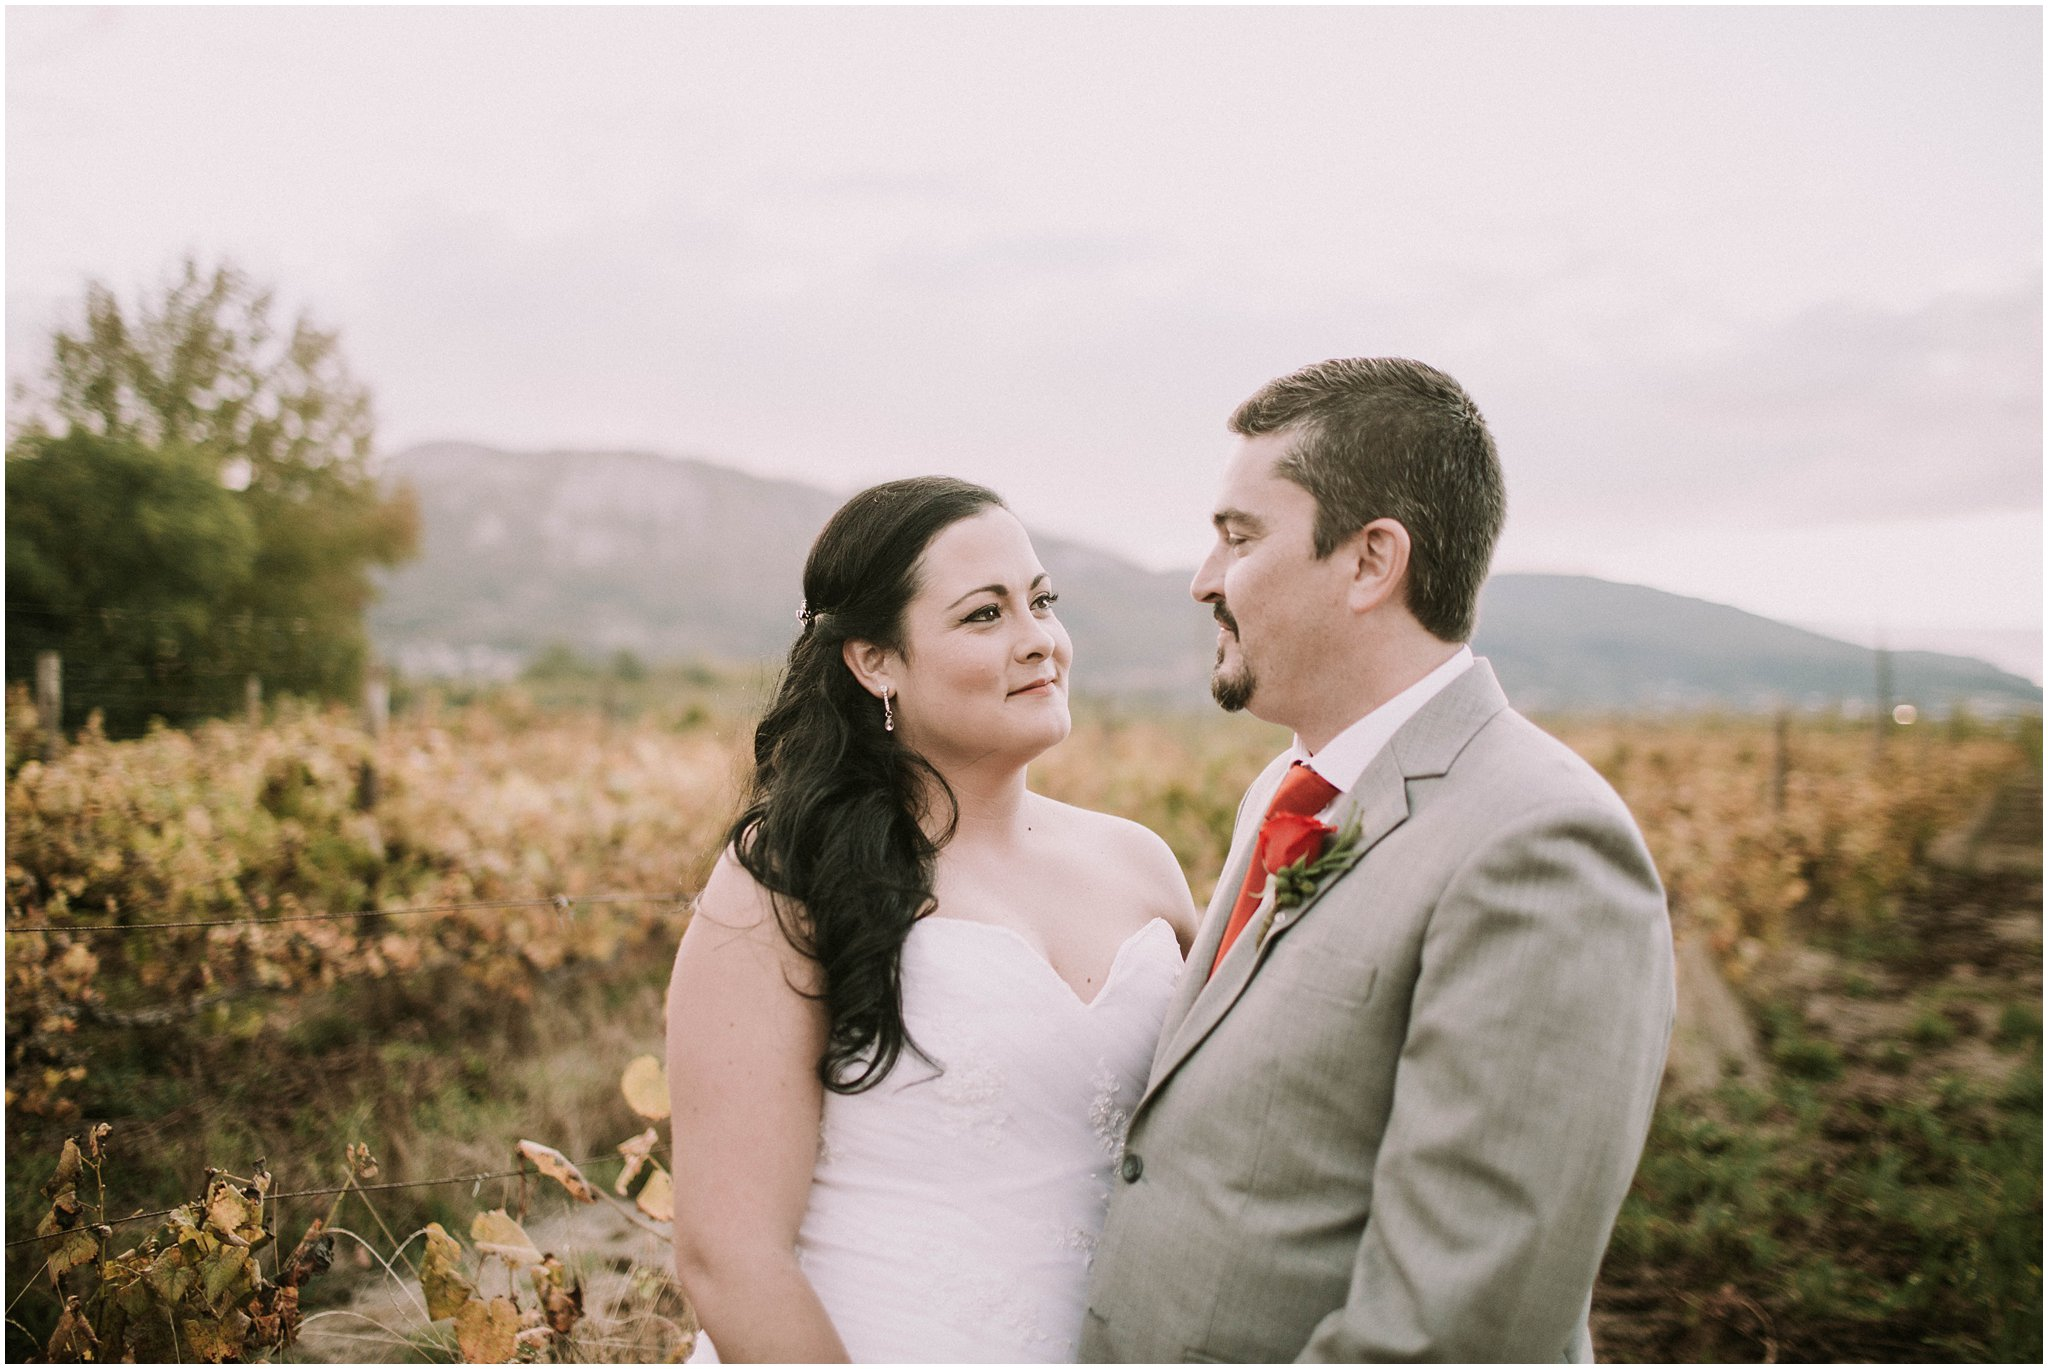 Ronel Kruger Cape Town Wedding and Lifestyle Photographer_2646.jpg